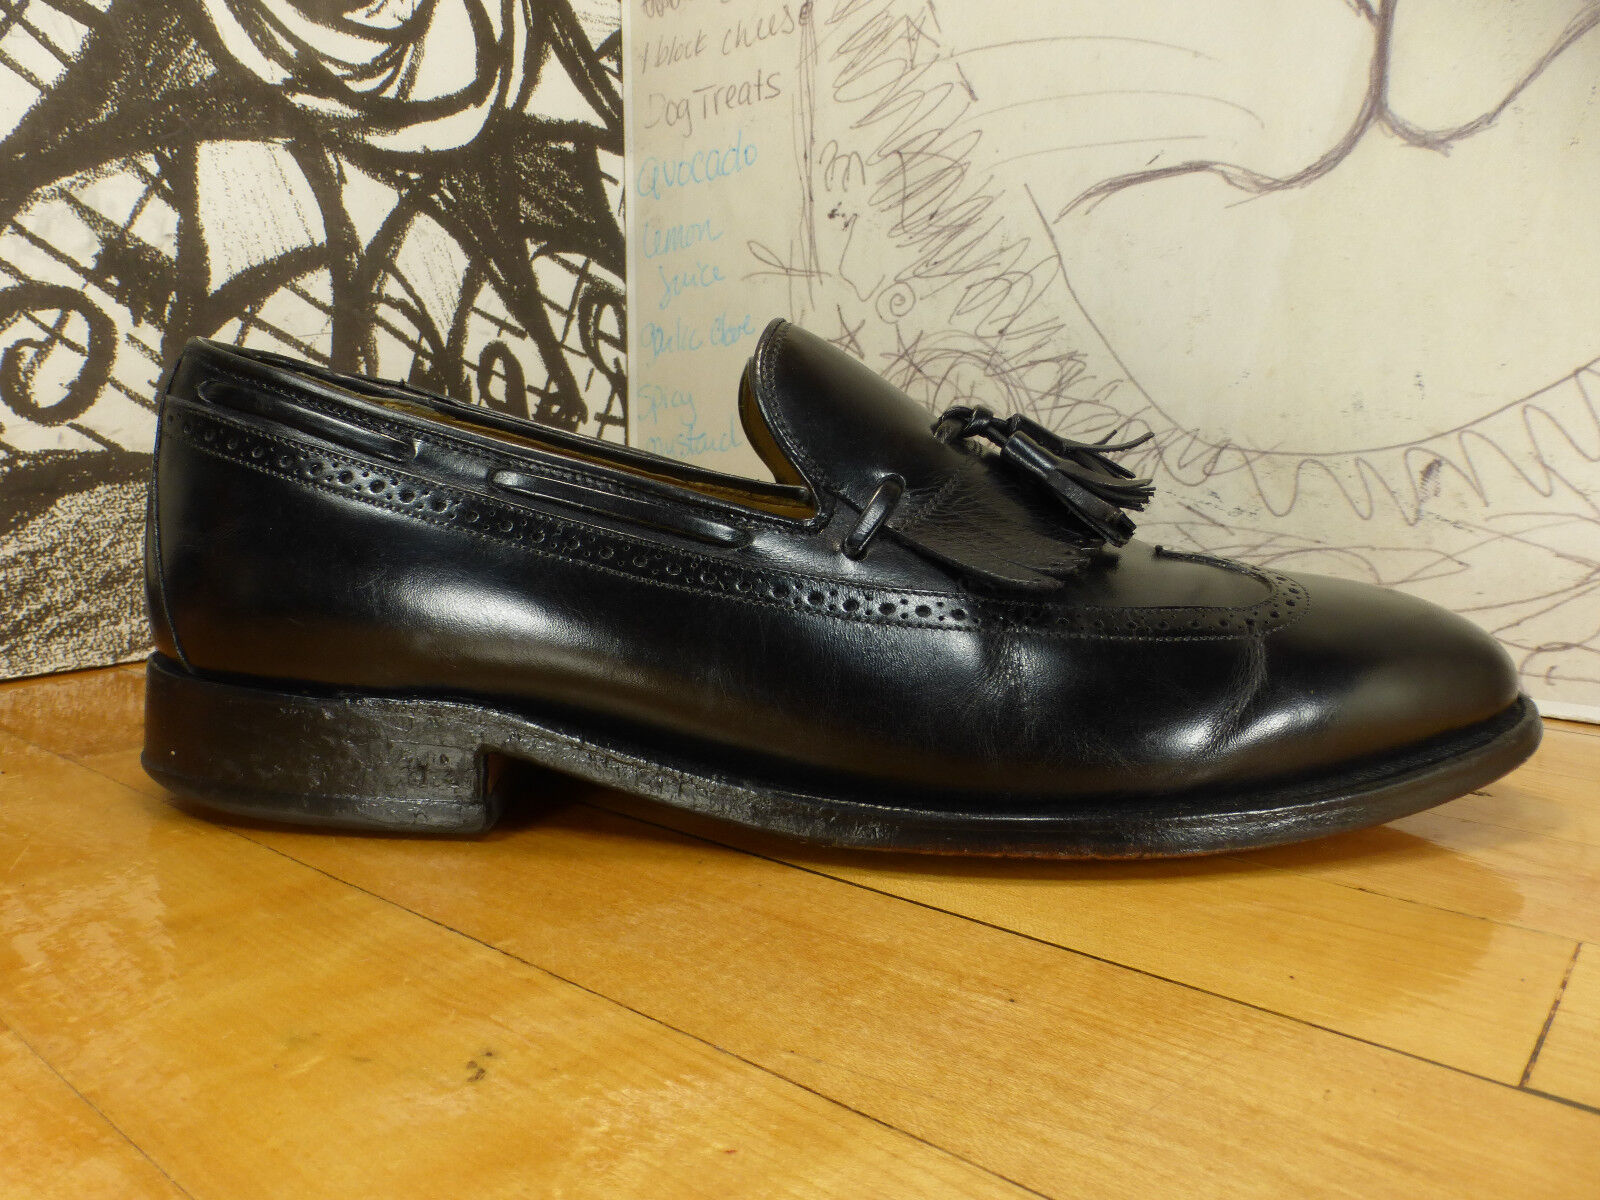 Johnston Murphy Black Leather 97210, Tassle Kiltie Loafers, 10C/A, 97210, Leather 24-8607 d83853